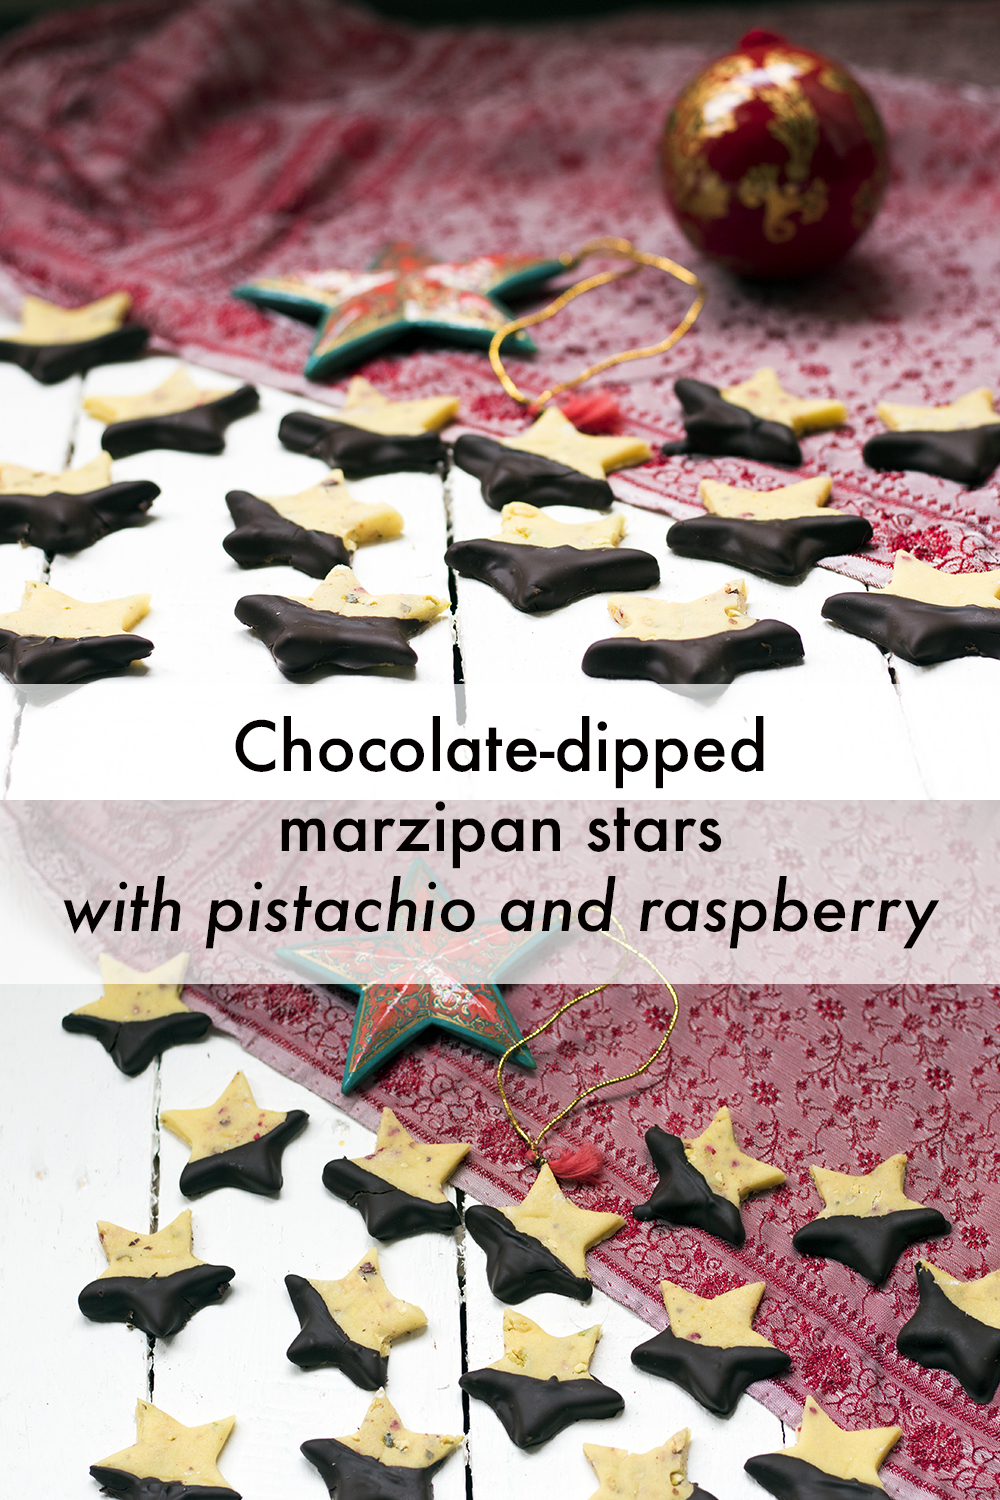 chocolate-dipped-marzipan-stars-with-pistachio-and-raspberry